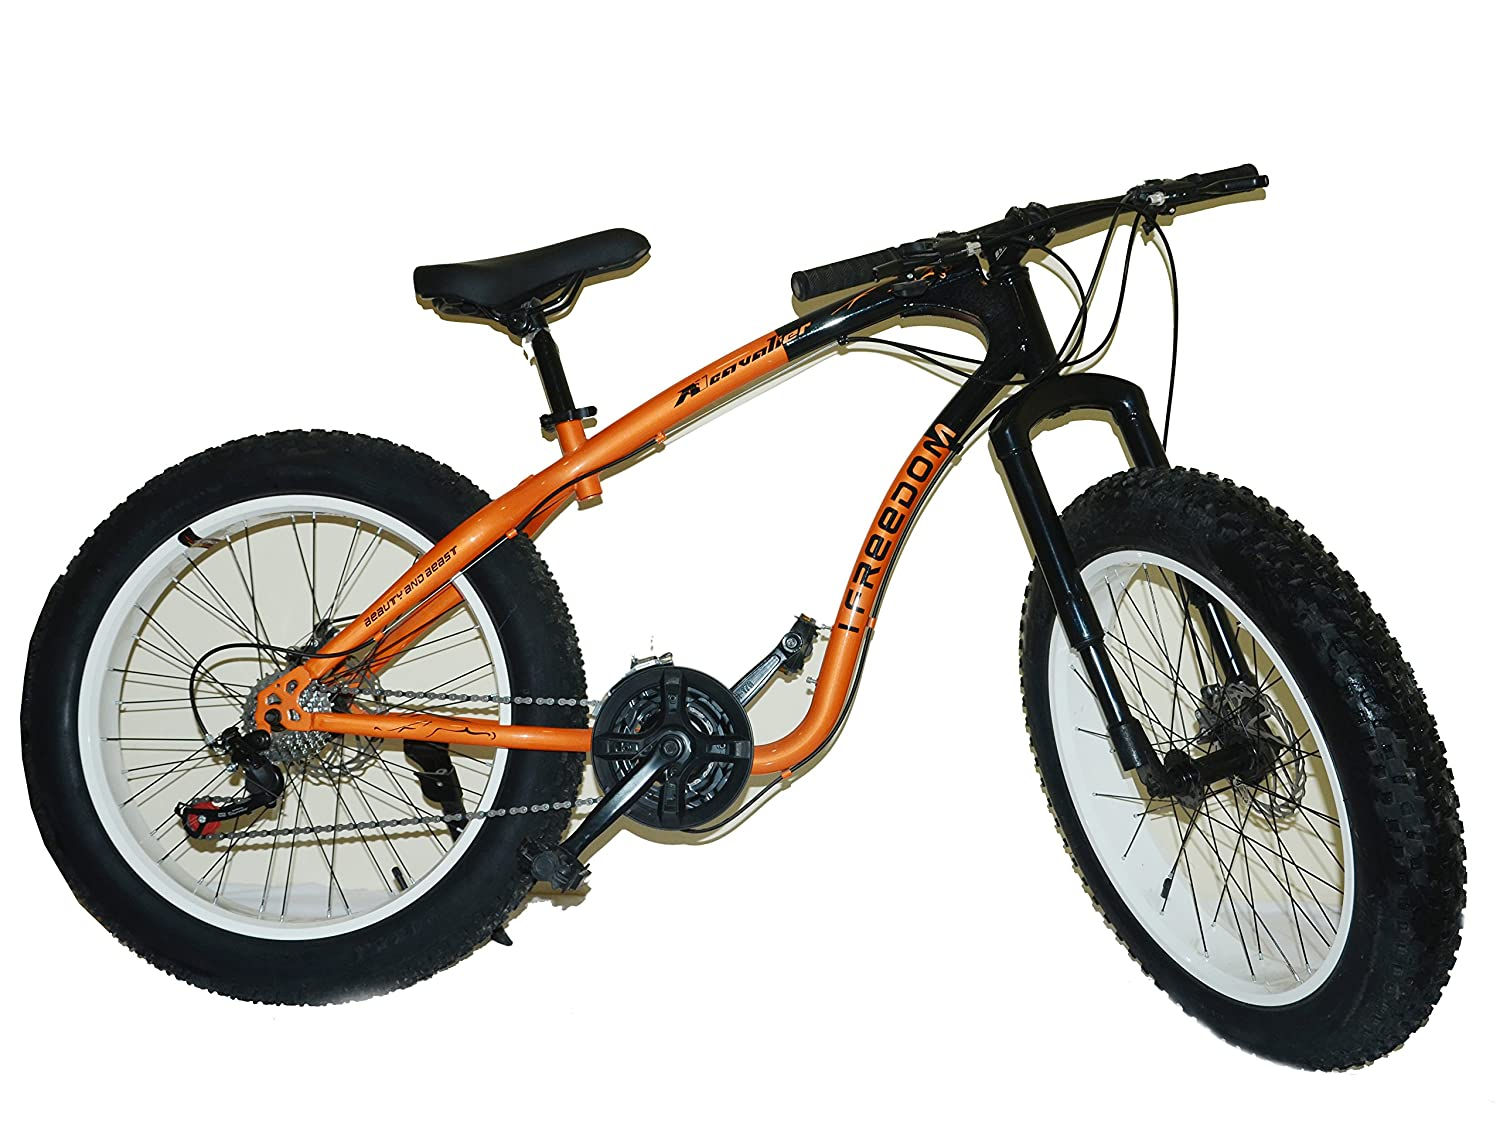 Tag Jaguar Fat Tyre Bicycle Price In India